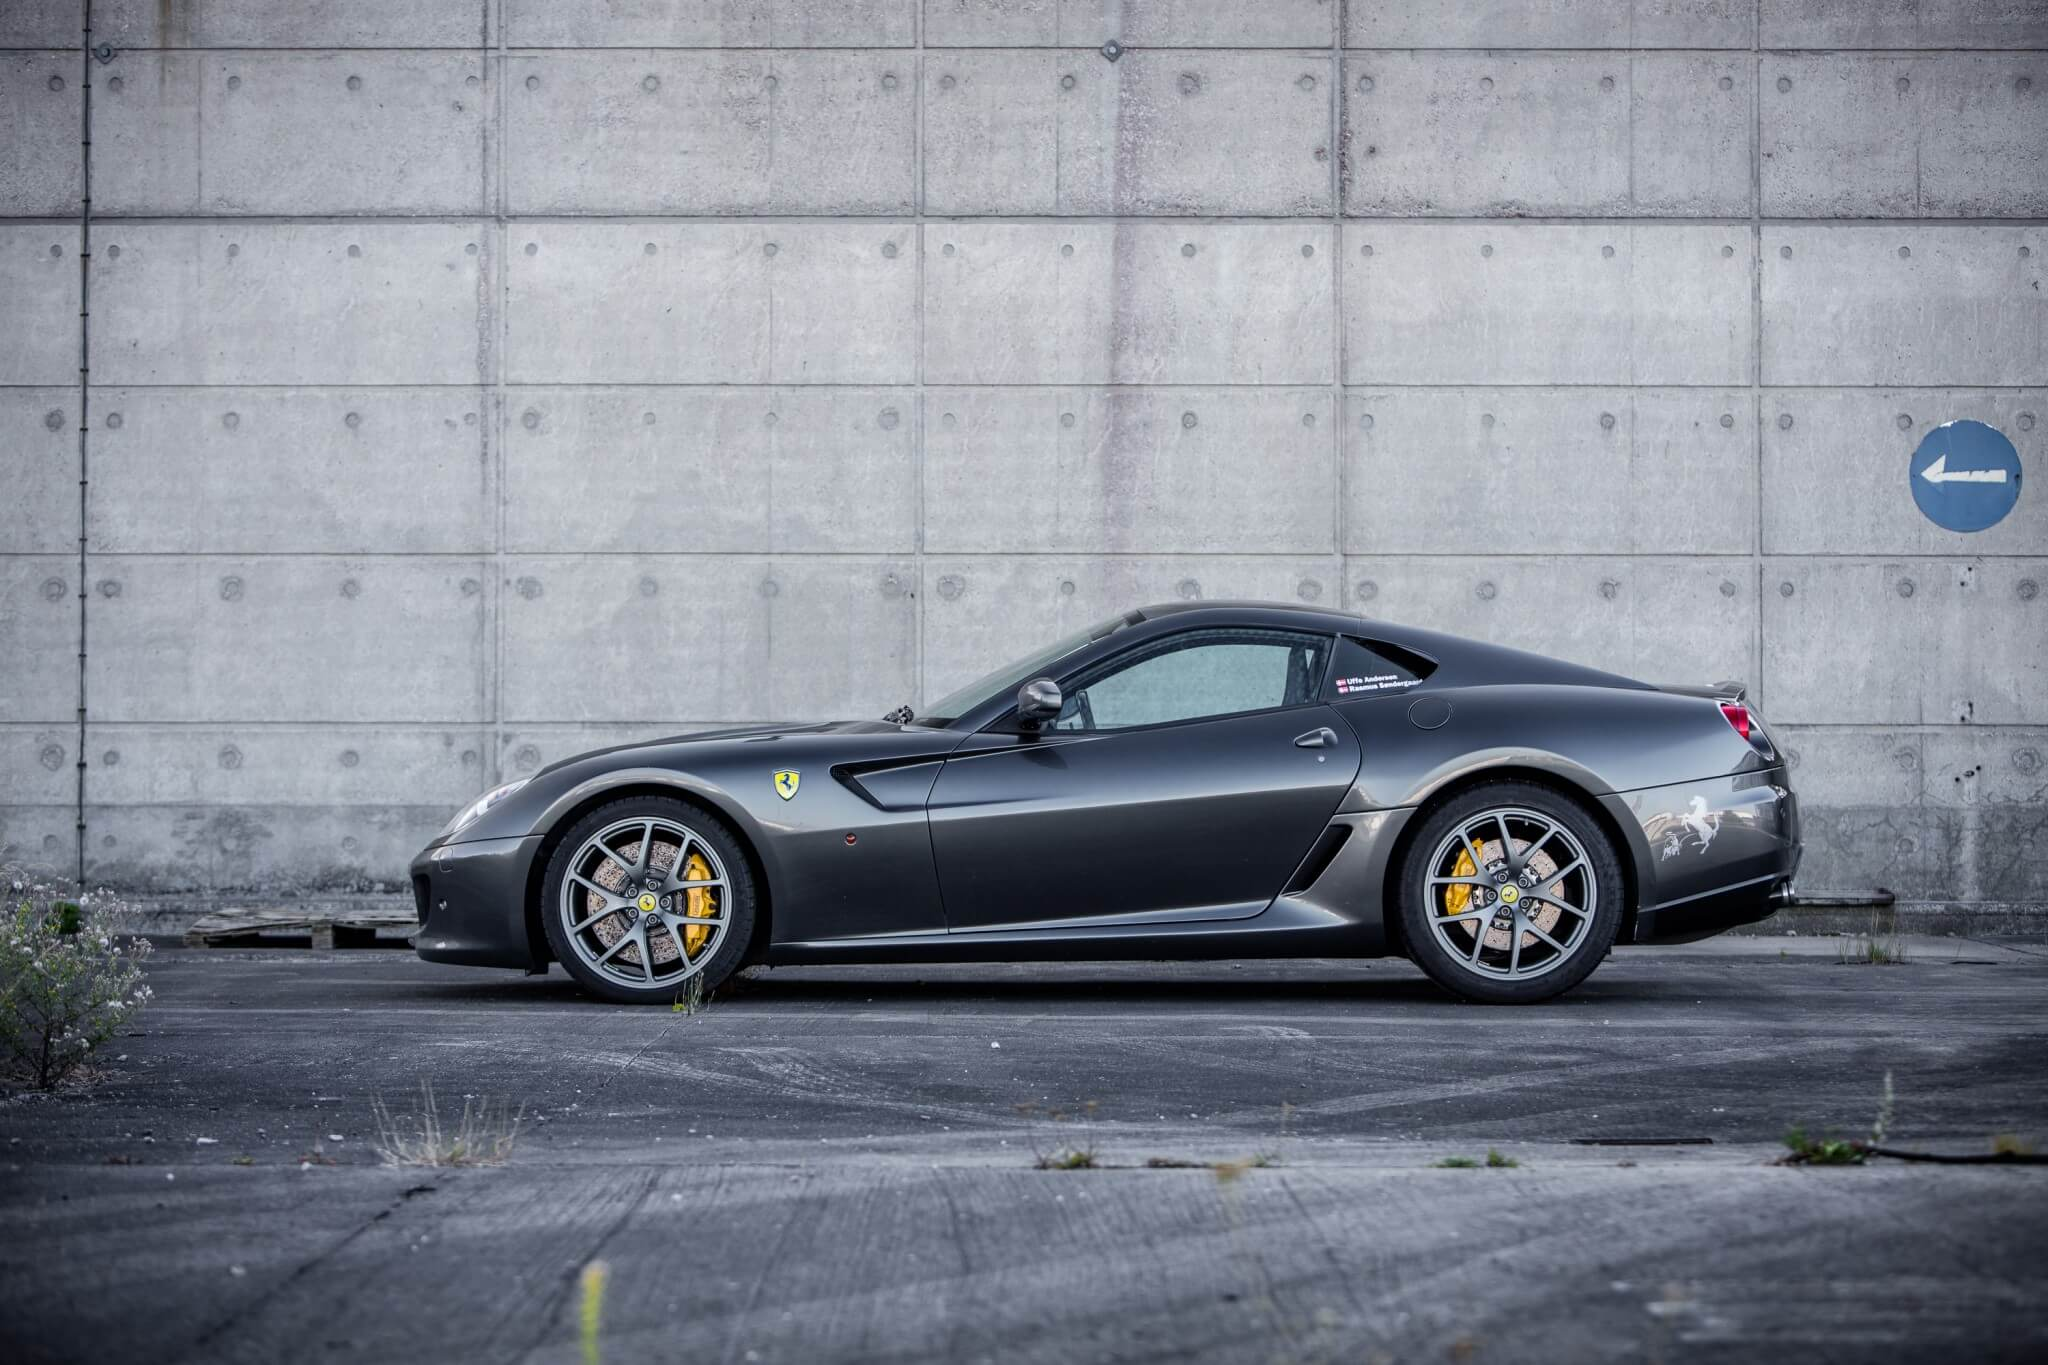 Grey Ferrari 599 GTB Fiorano from the side